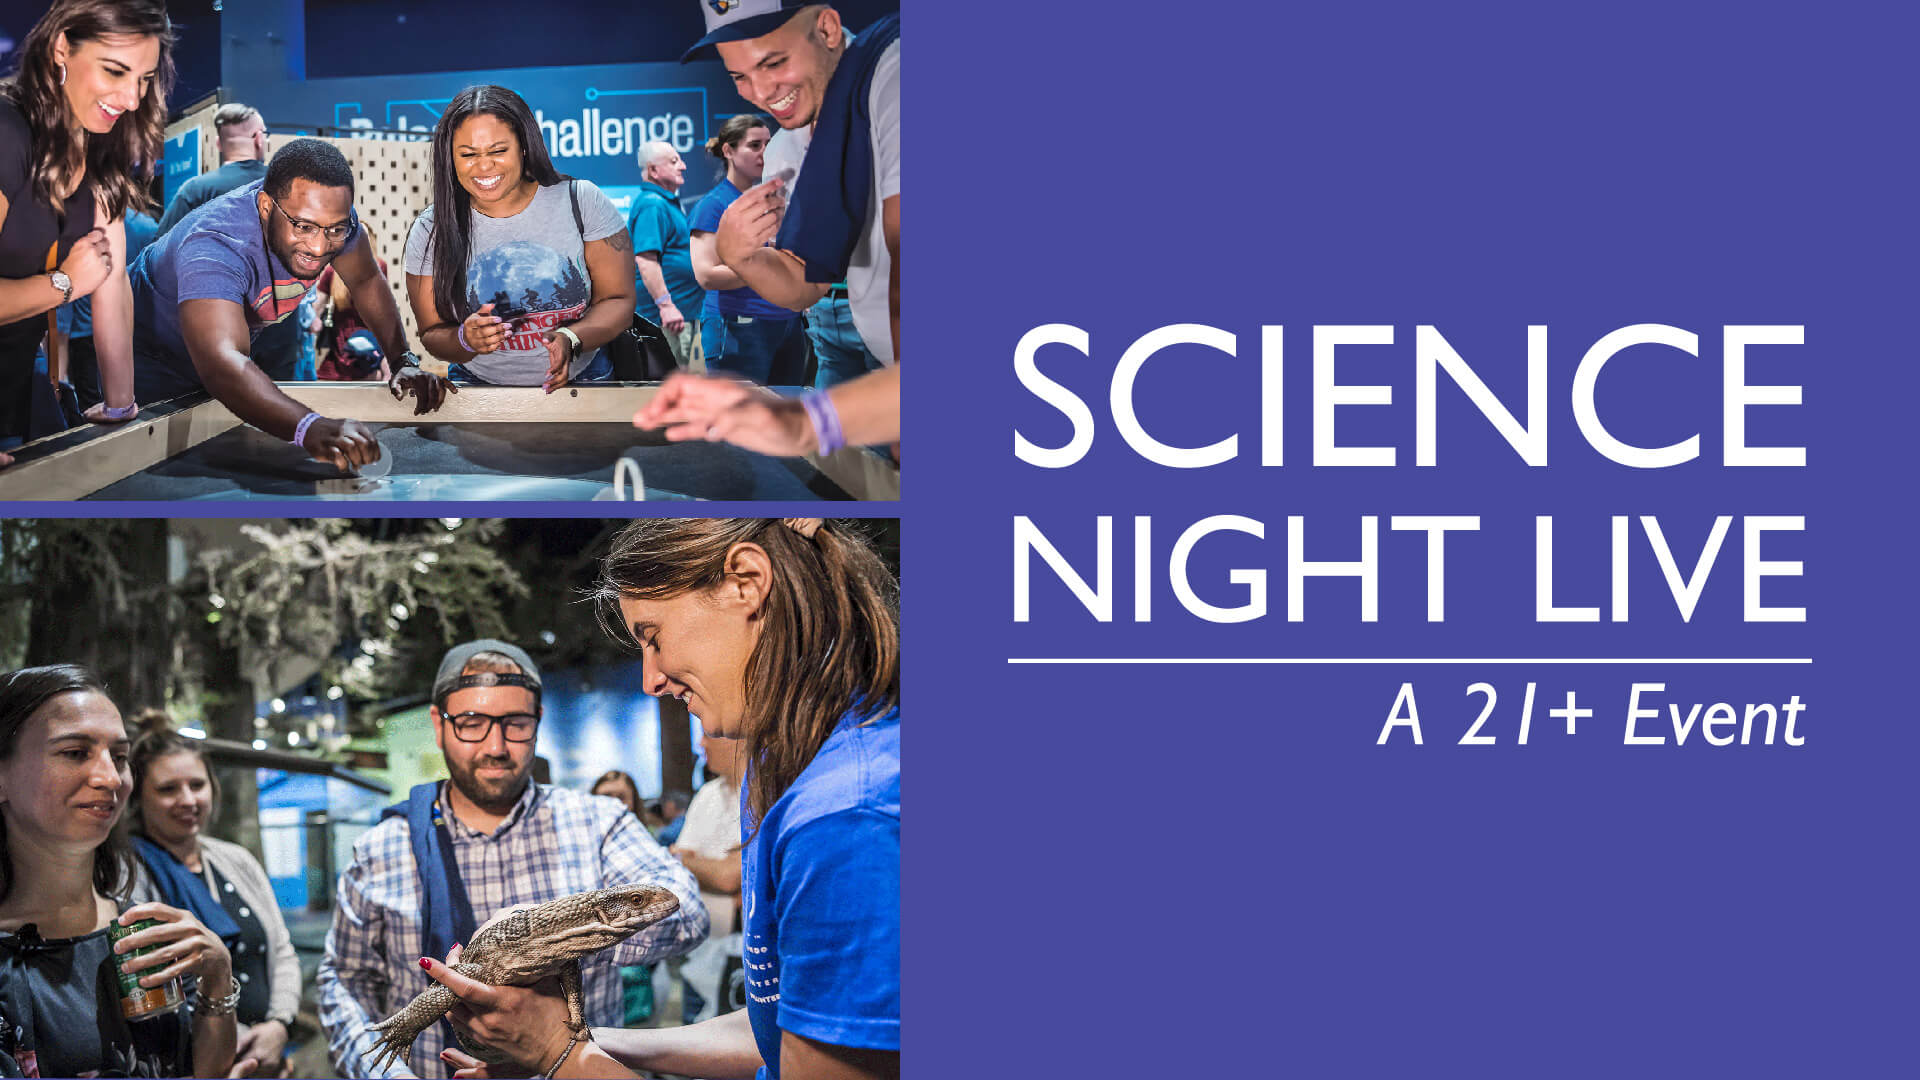 Science Night Live - A 21+ Event Logo and two photos of guests enjoying an exhibit at event.